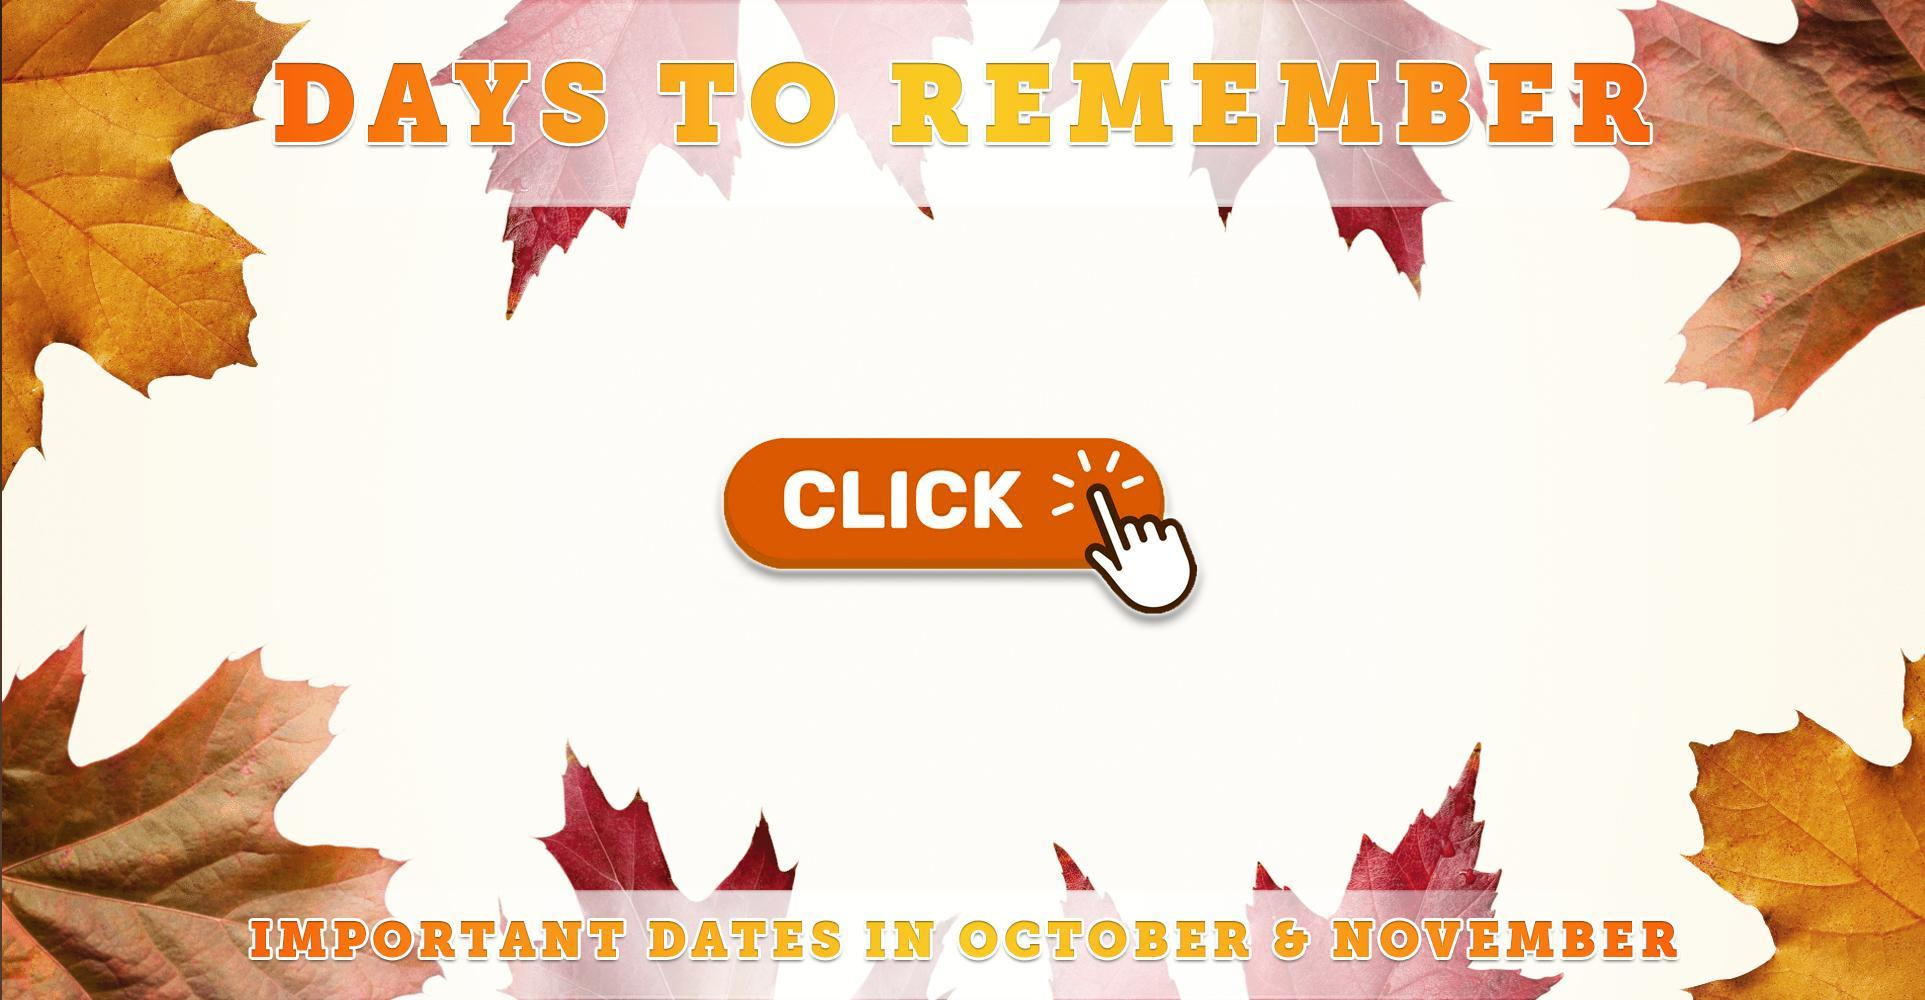 Important Days to Remember for October & November 2021